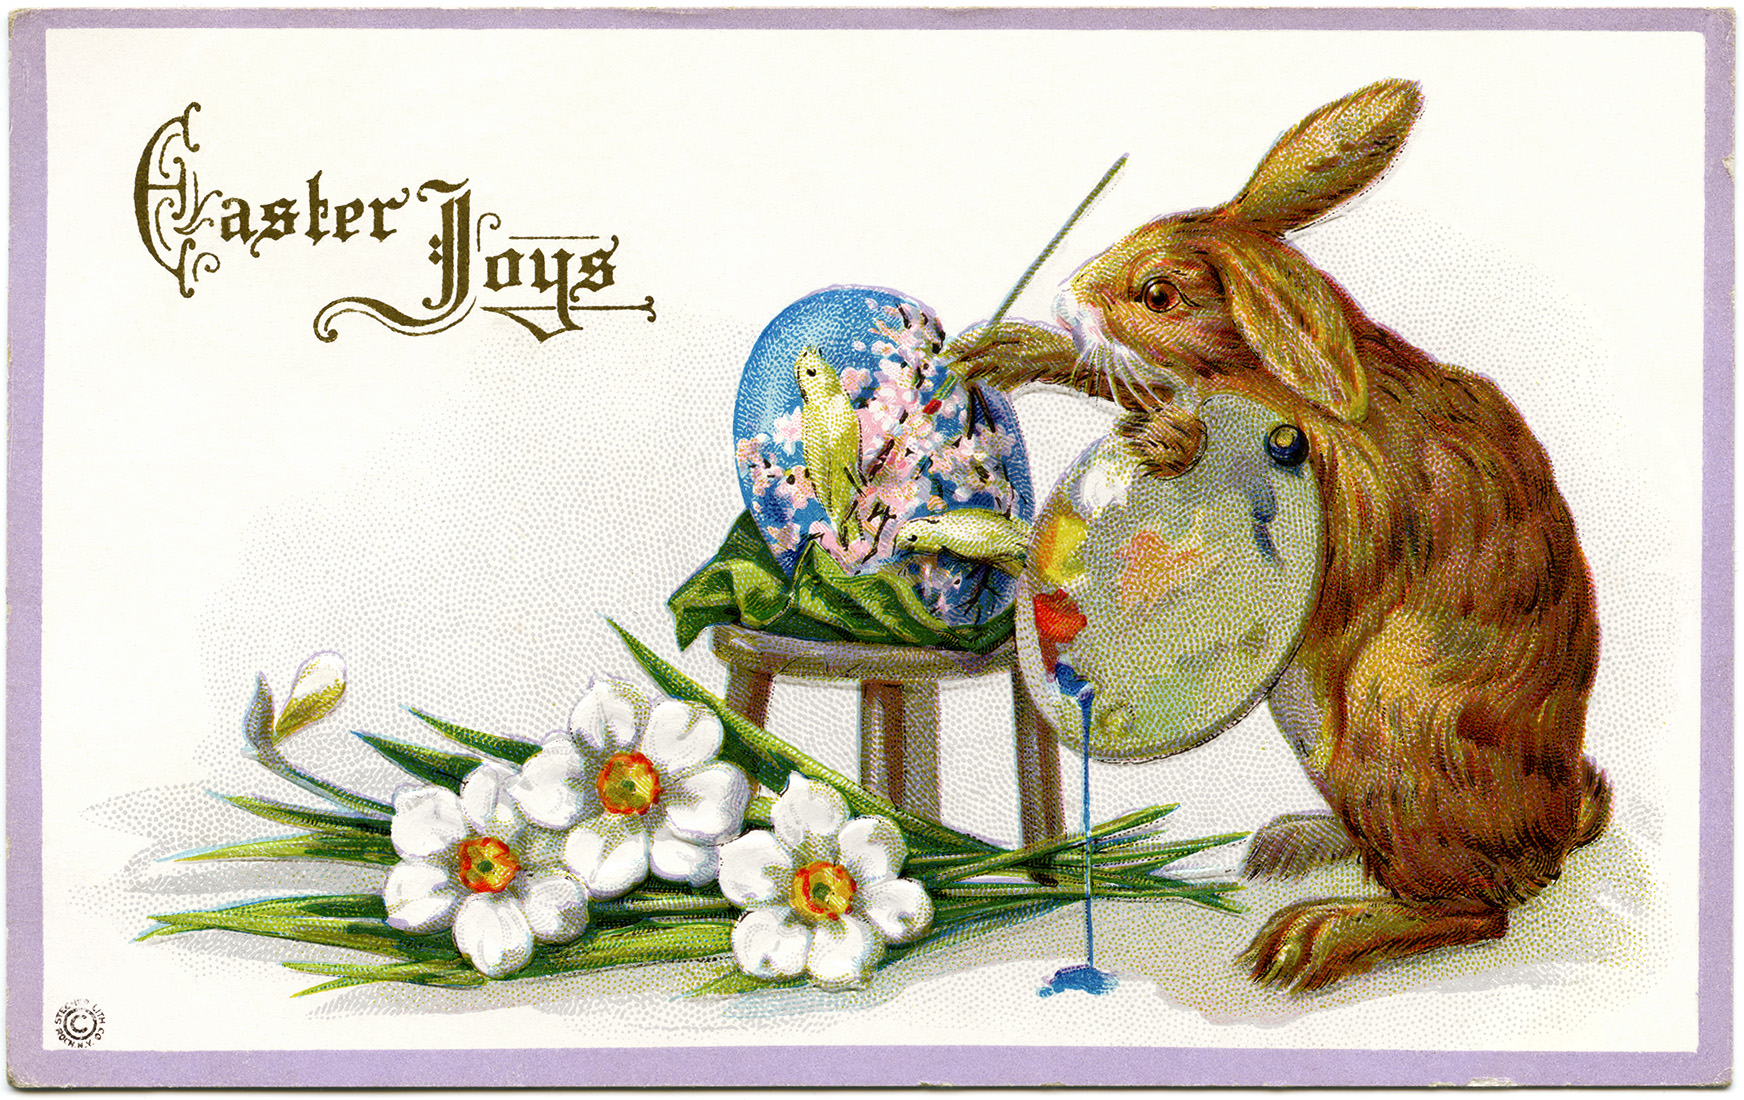 easter stecher postcard, easter bunny artist, fantasy easter clip art, vintage easter card, rabbit painting egg